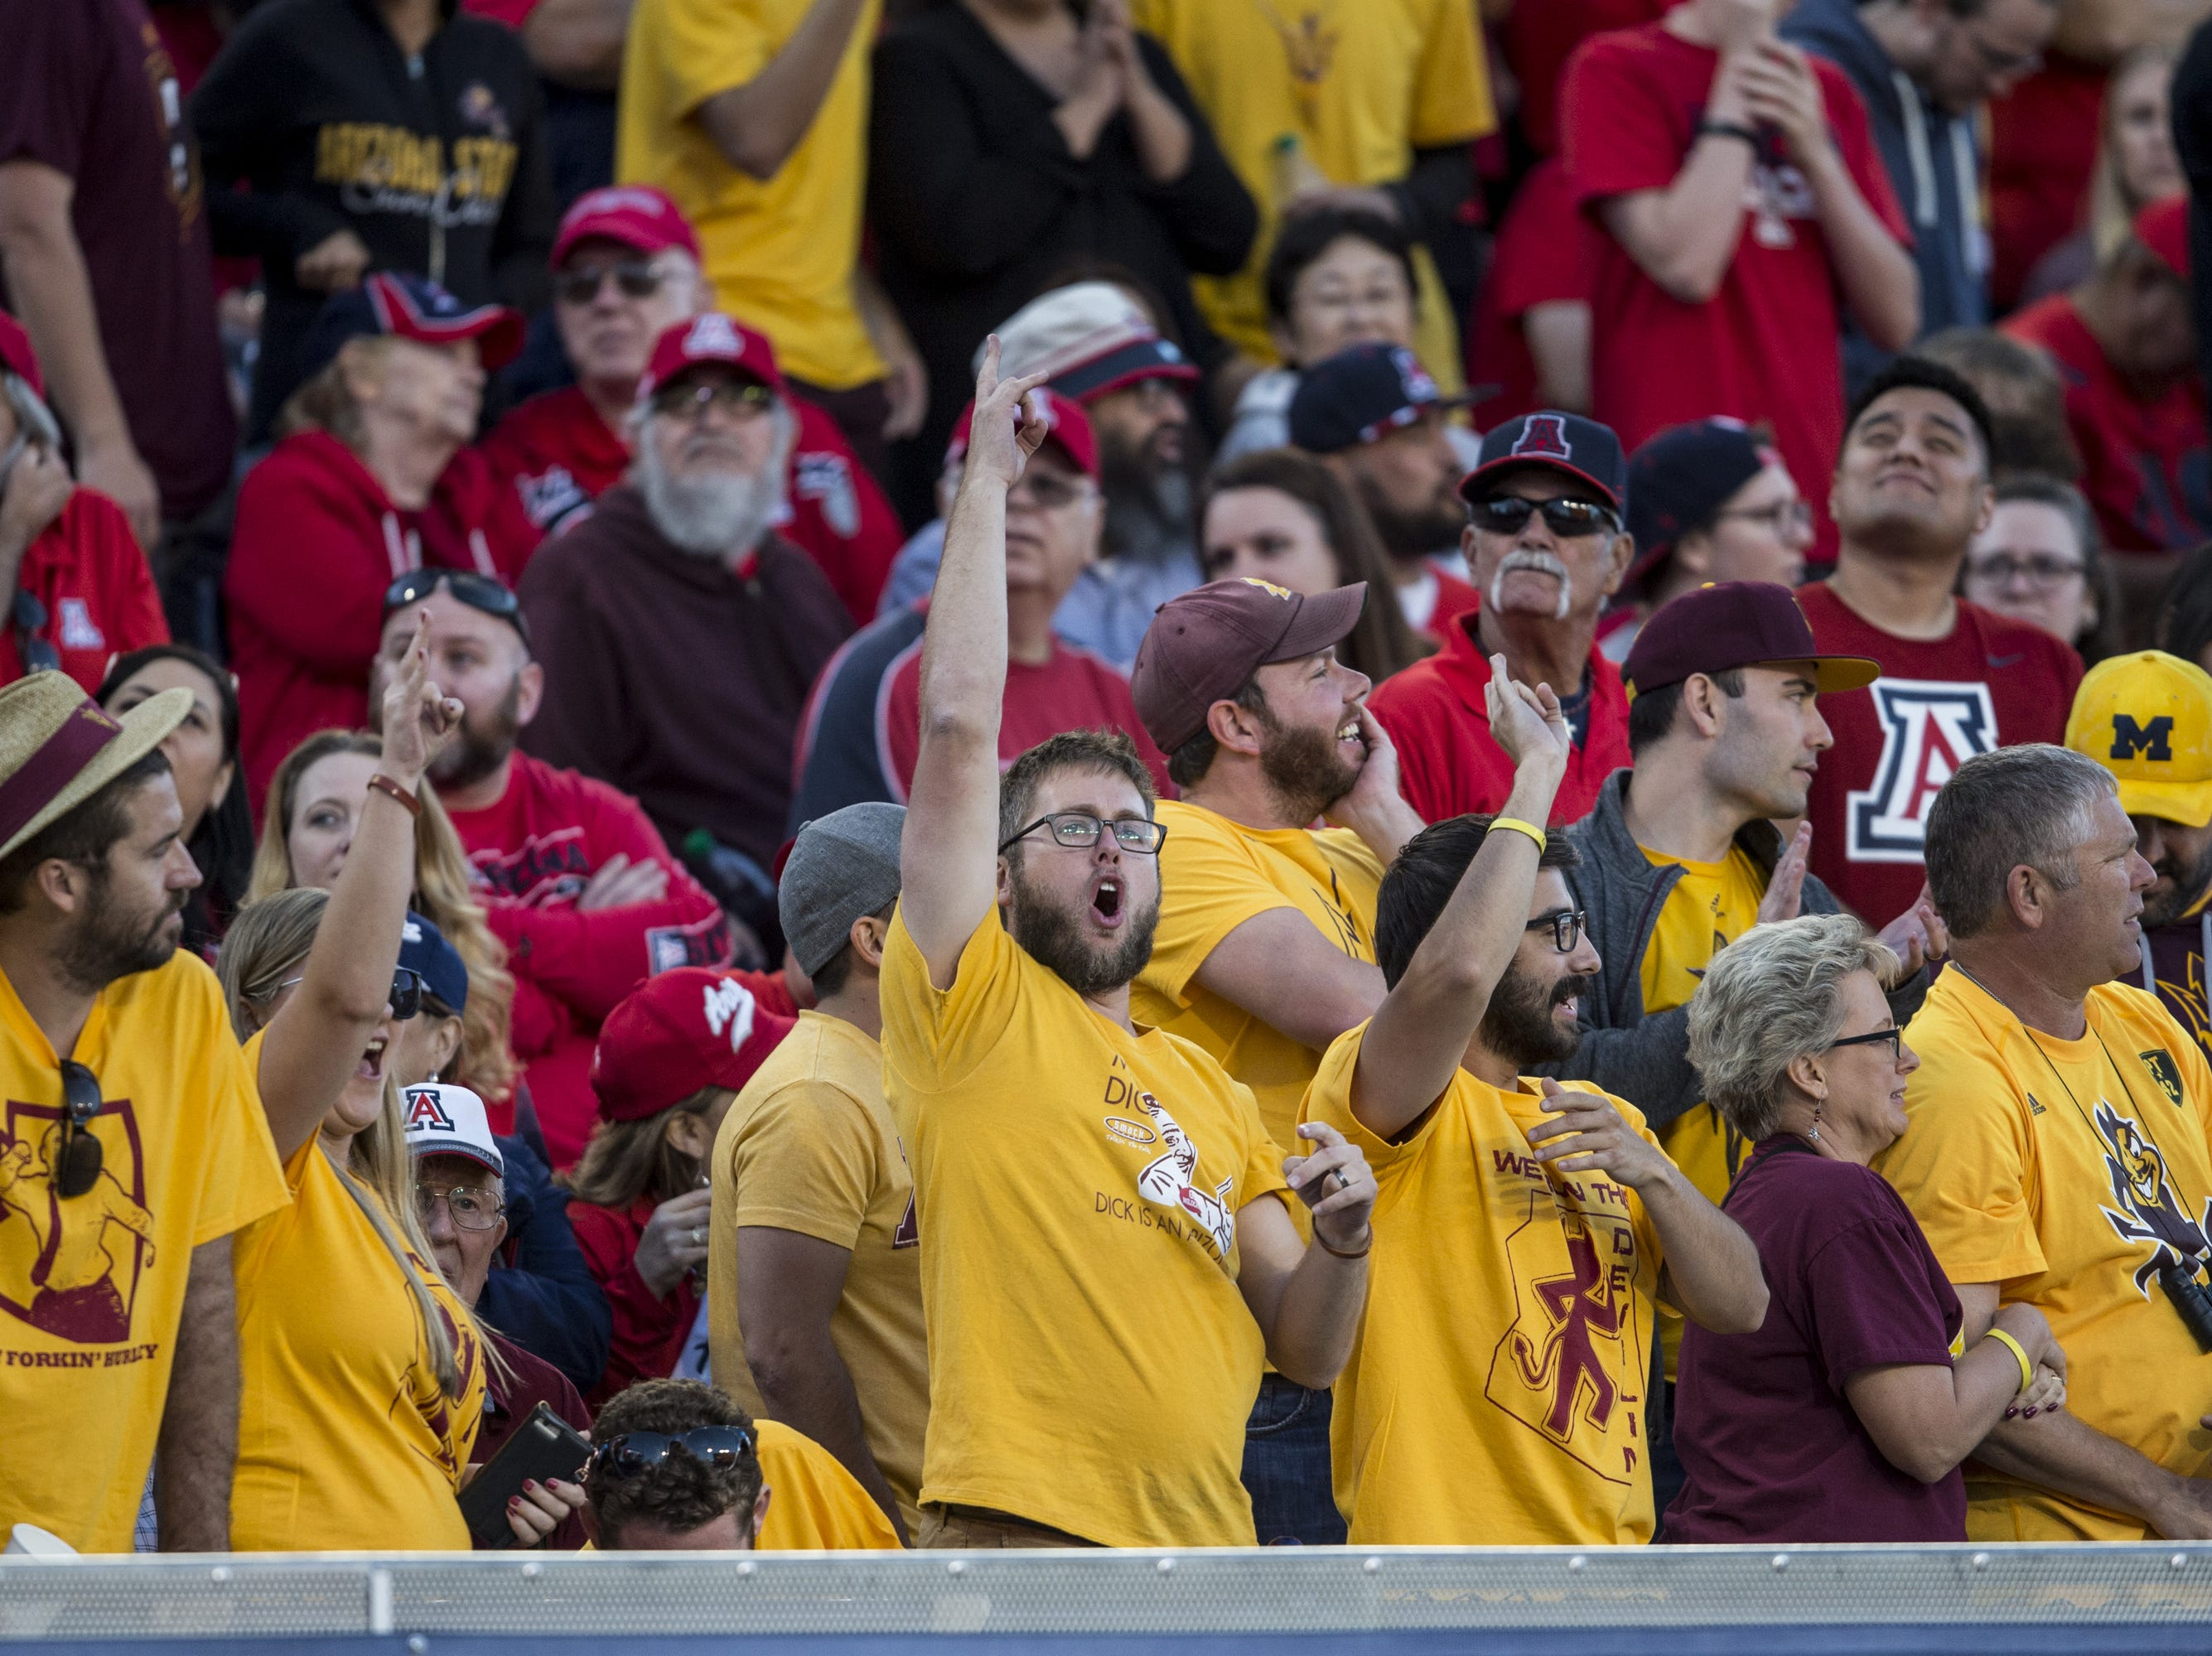 Arizona State fans cheer during the game against Arizona during the second half of the Territorial Cup on Saturday, Nov. 24, 2018, at Arizona Stadium in Tucson, Ariz. Arizona State won, 41-40.